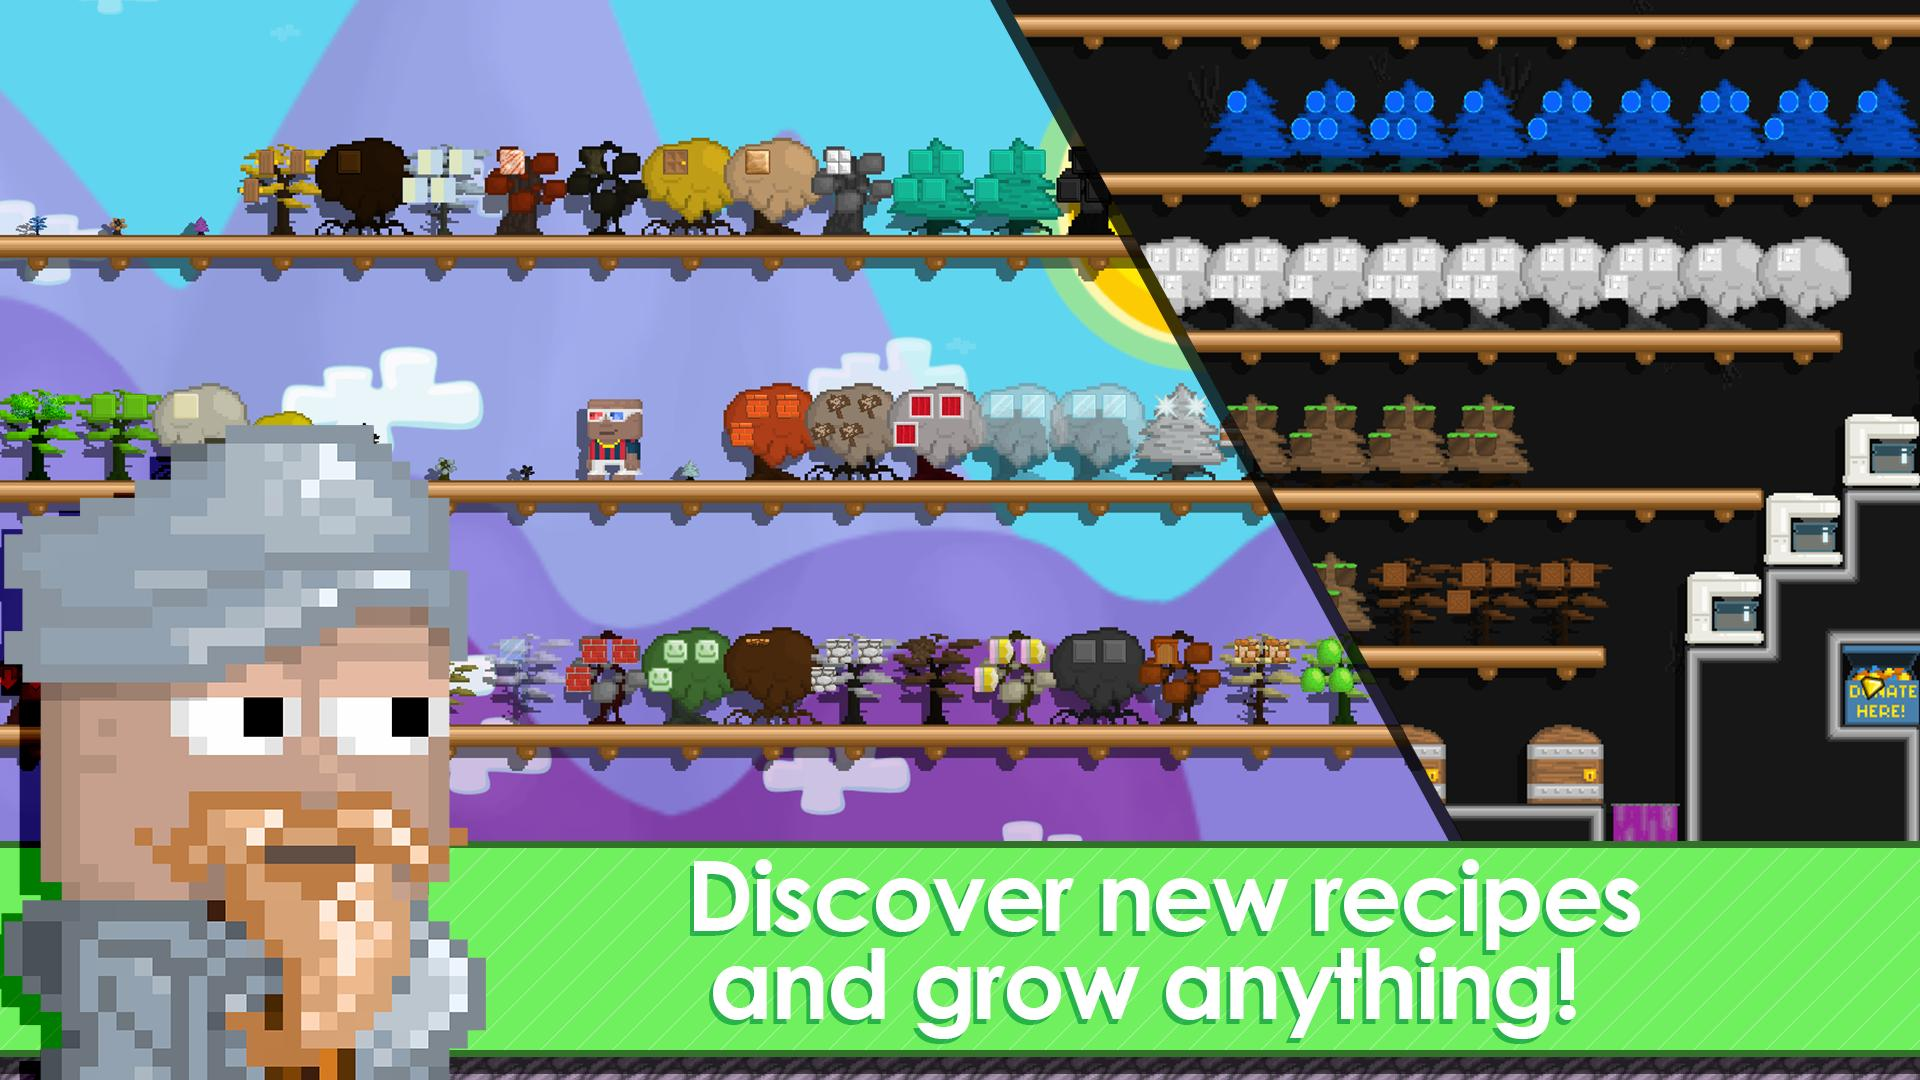 Growtopia for Android - APK Download